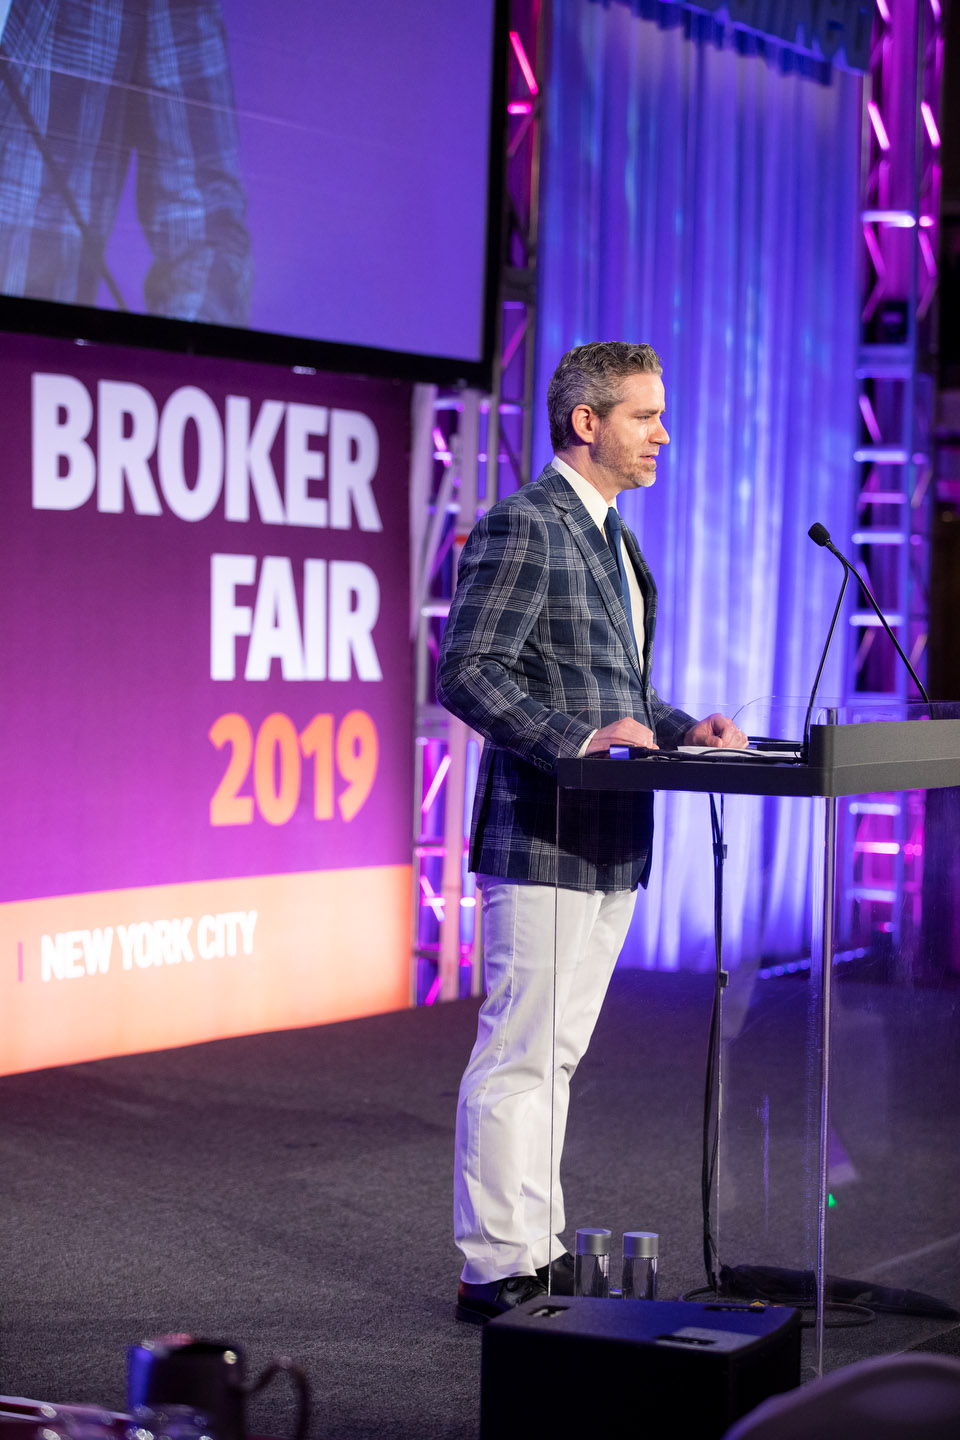 Broker Fair 2019 - Presented by deBanked - 360